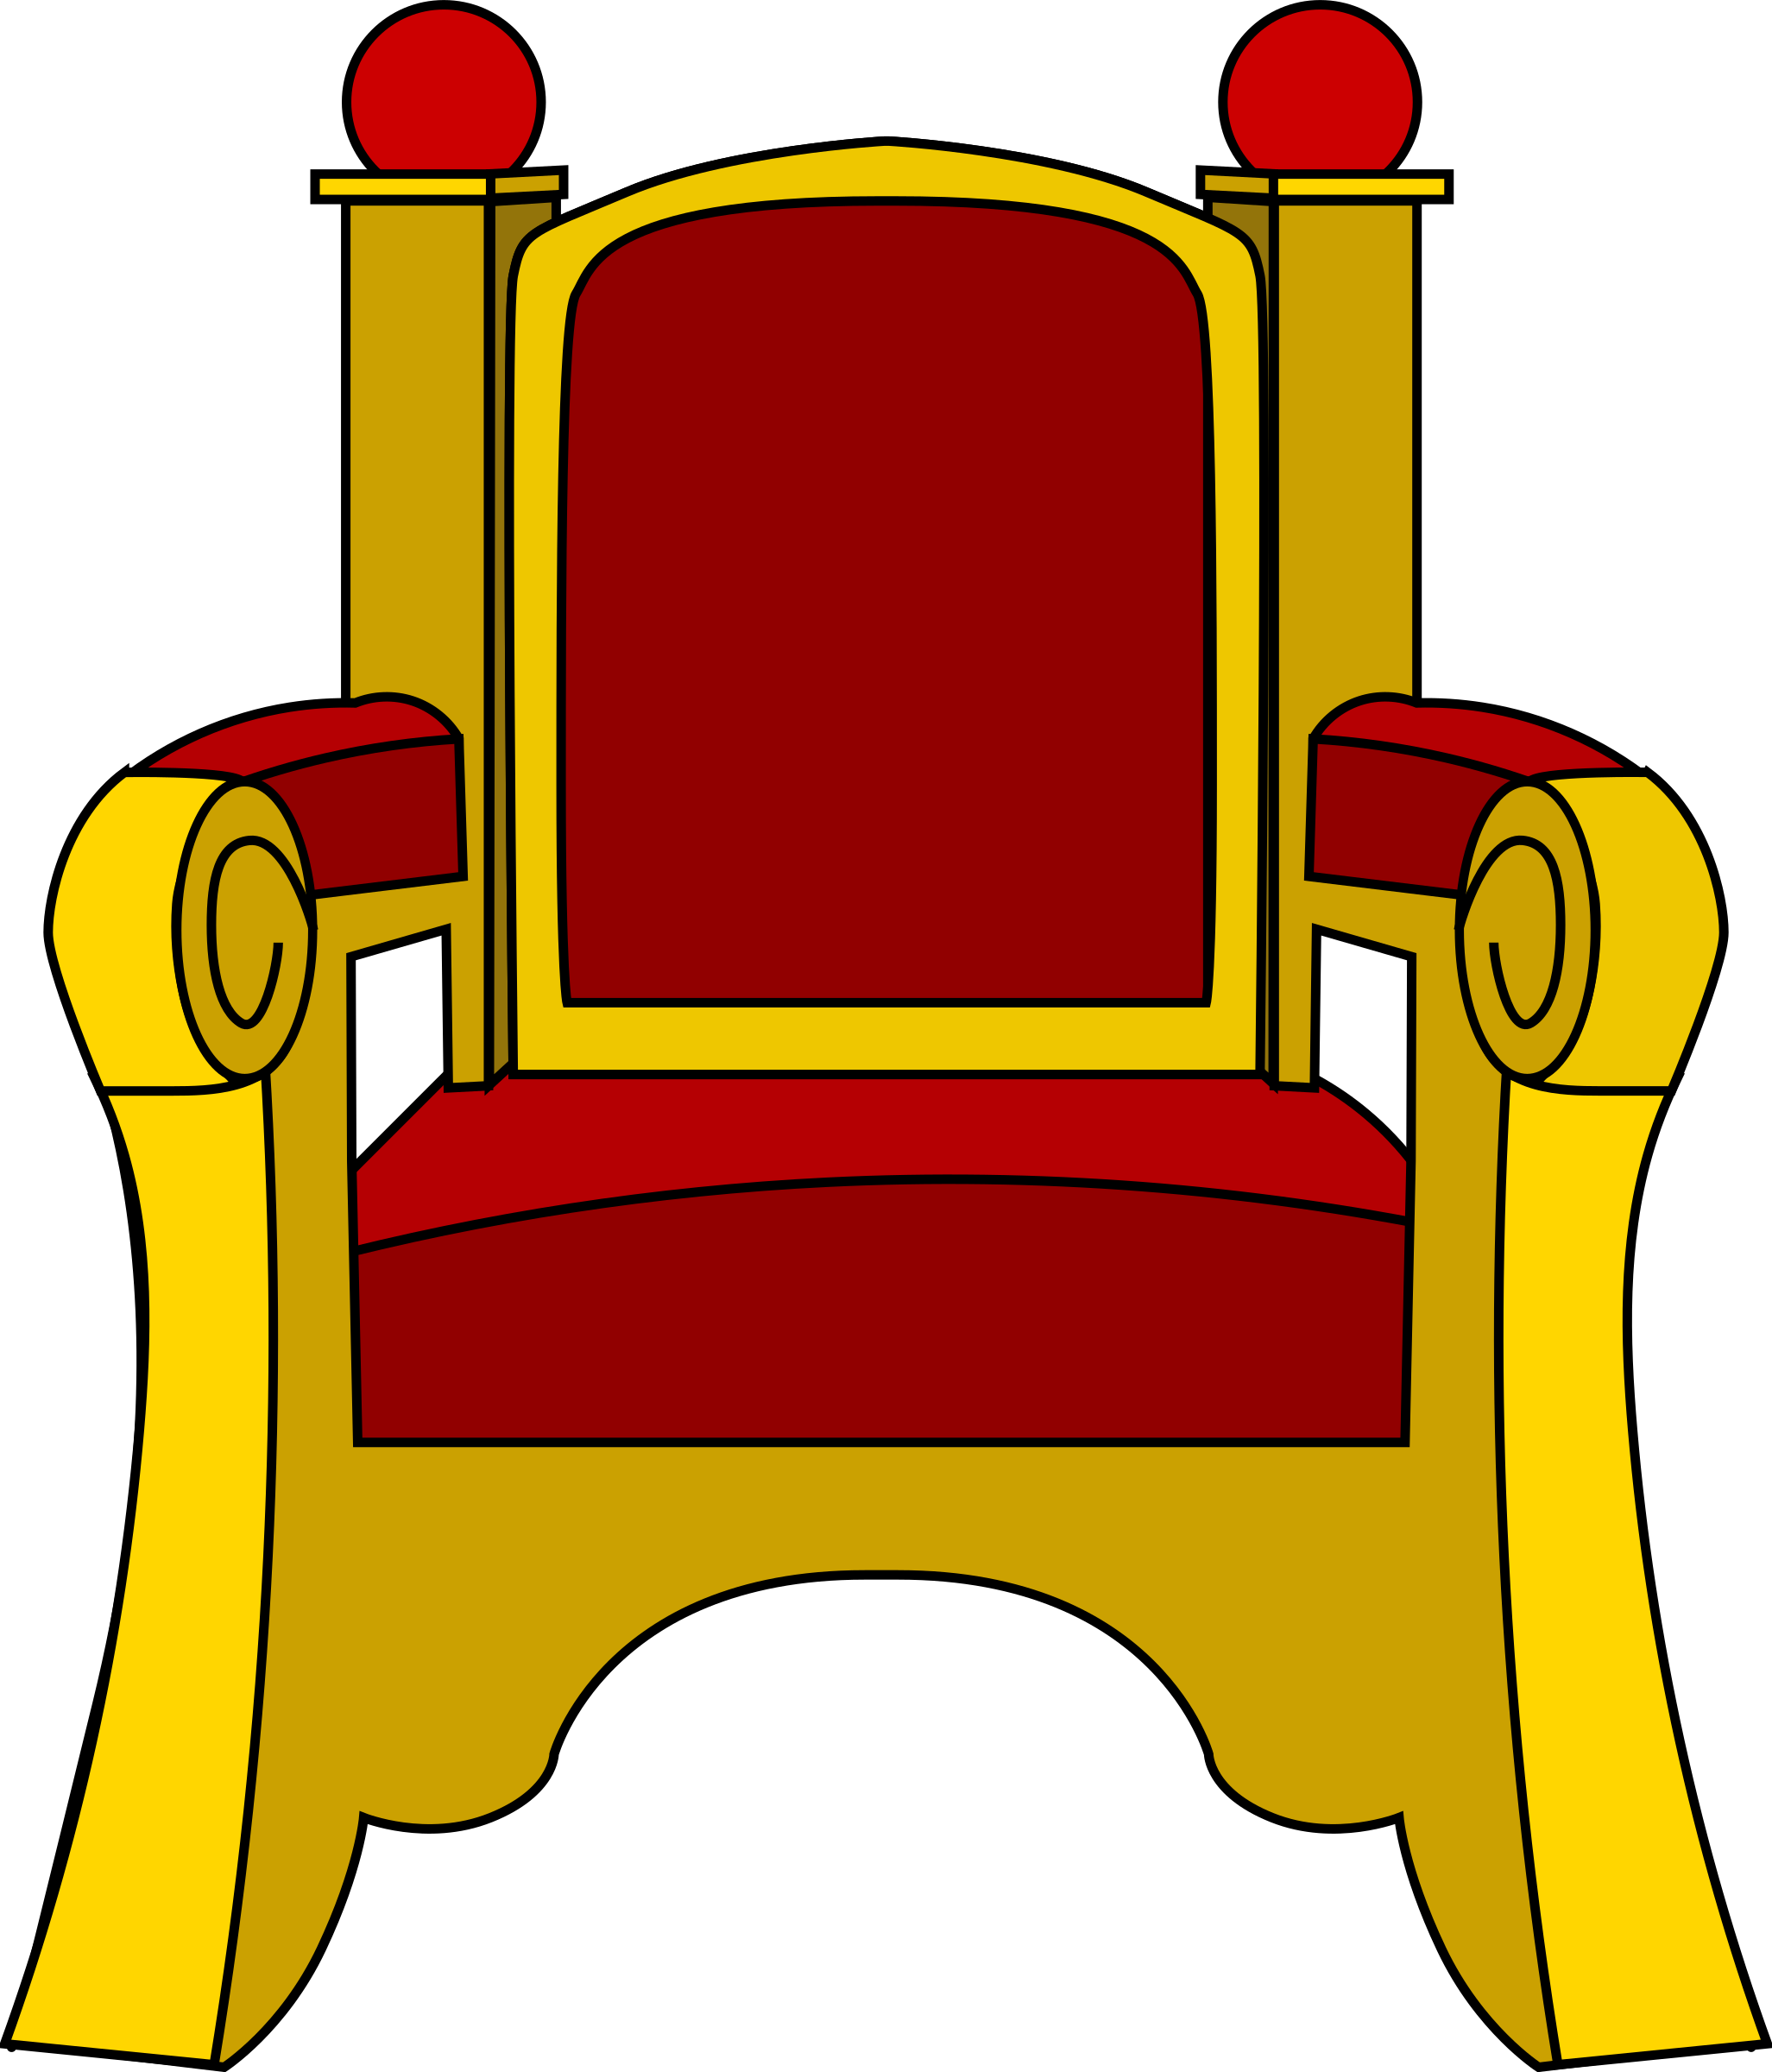 King clipart scepter. Throne big image png